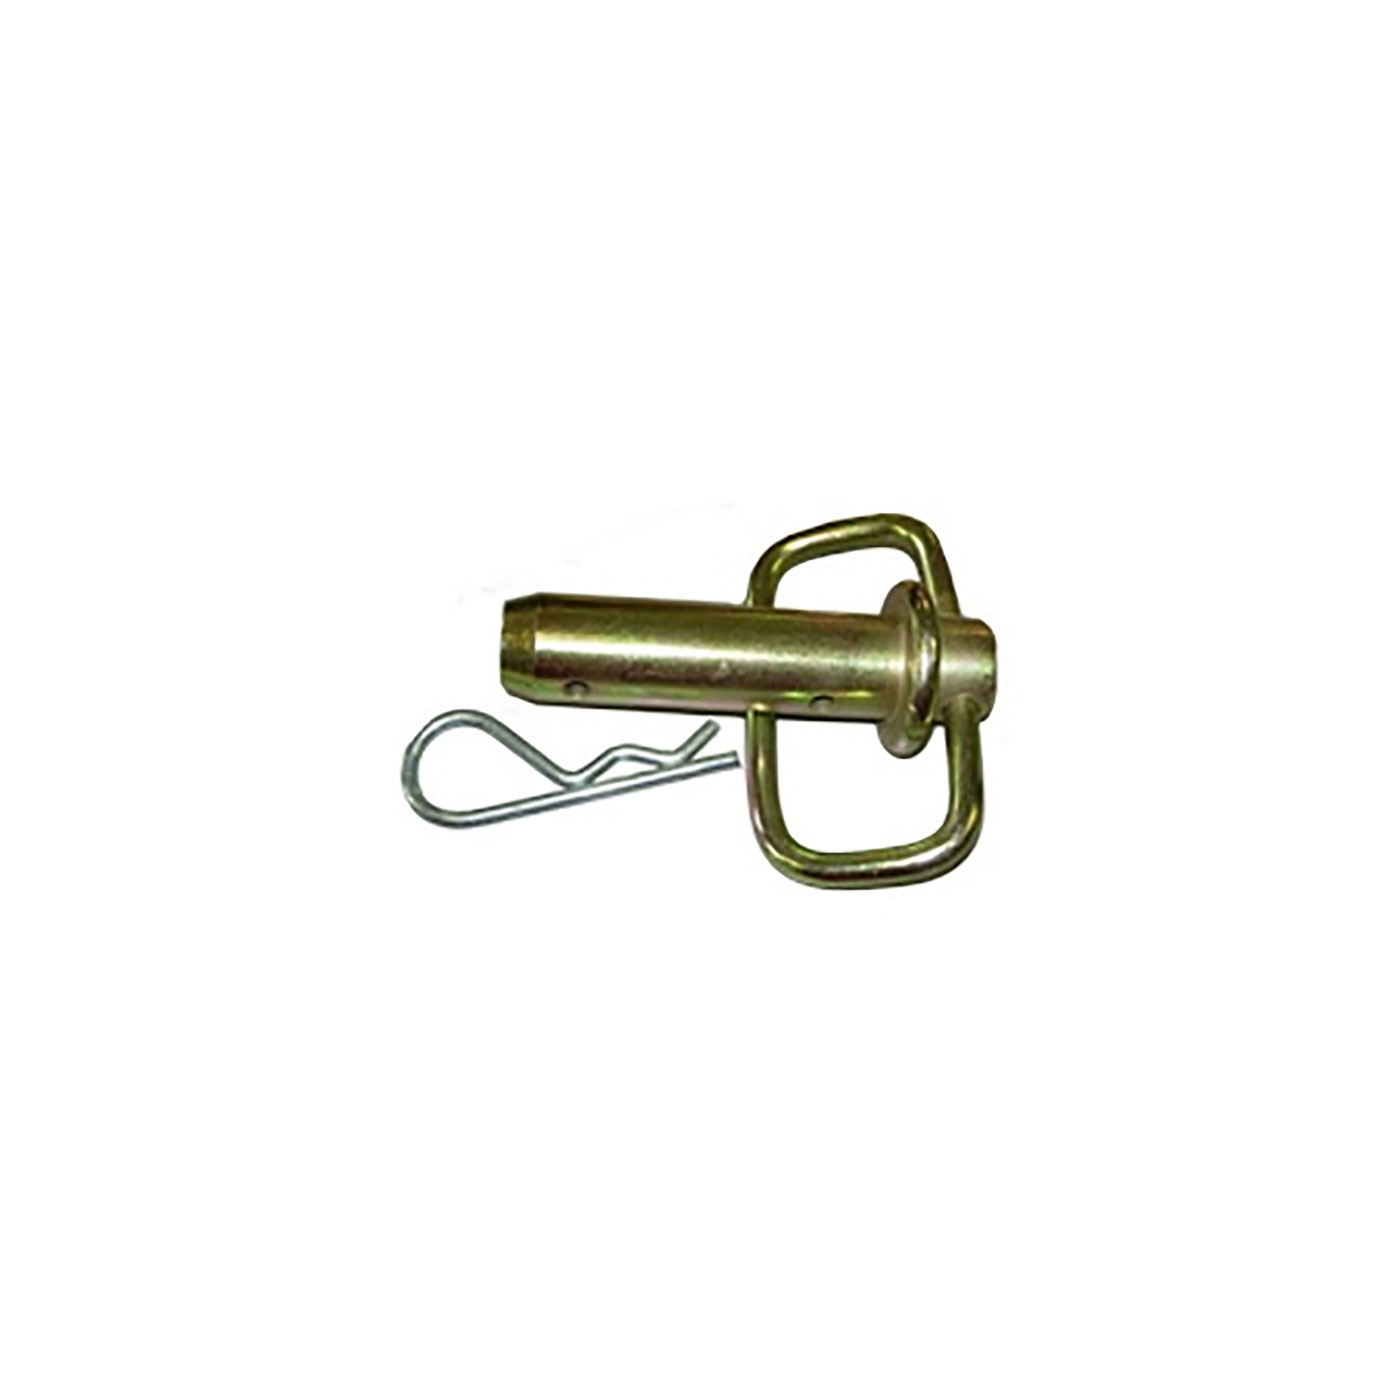 Hitch Pin w/Hairpin Cotter (Western)